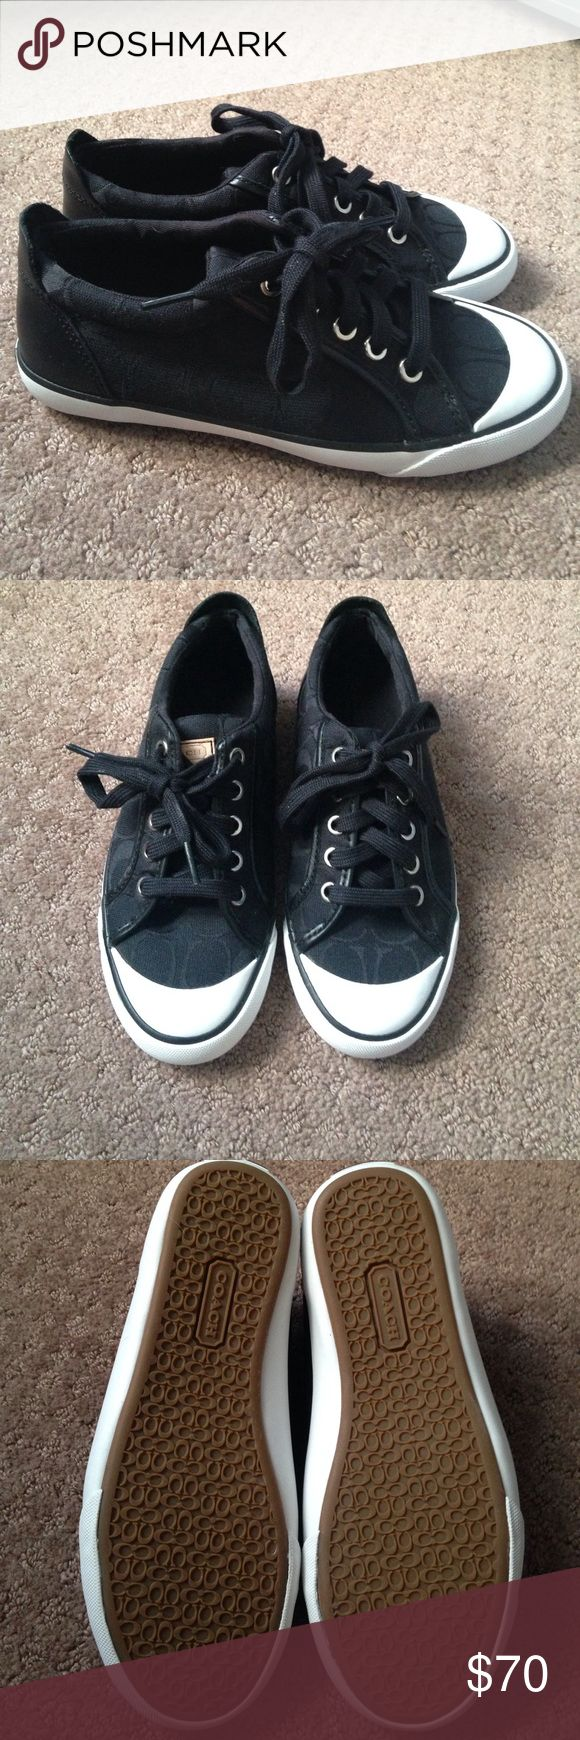 Coach sneakers Never worn black Coach sneakers no box Coach Shoes Sneakers